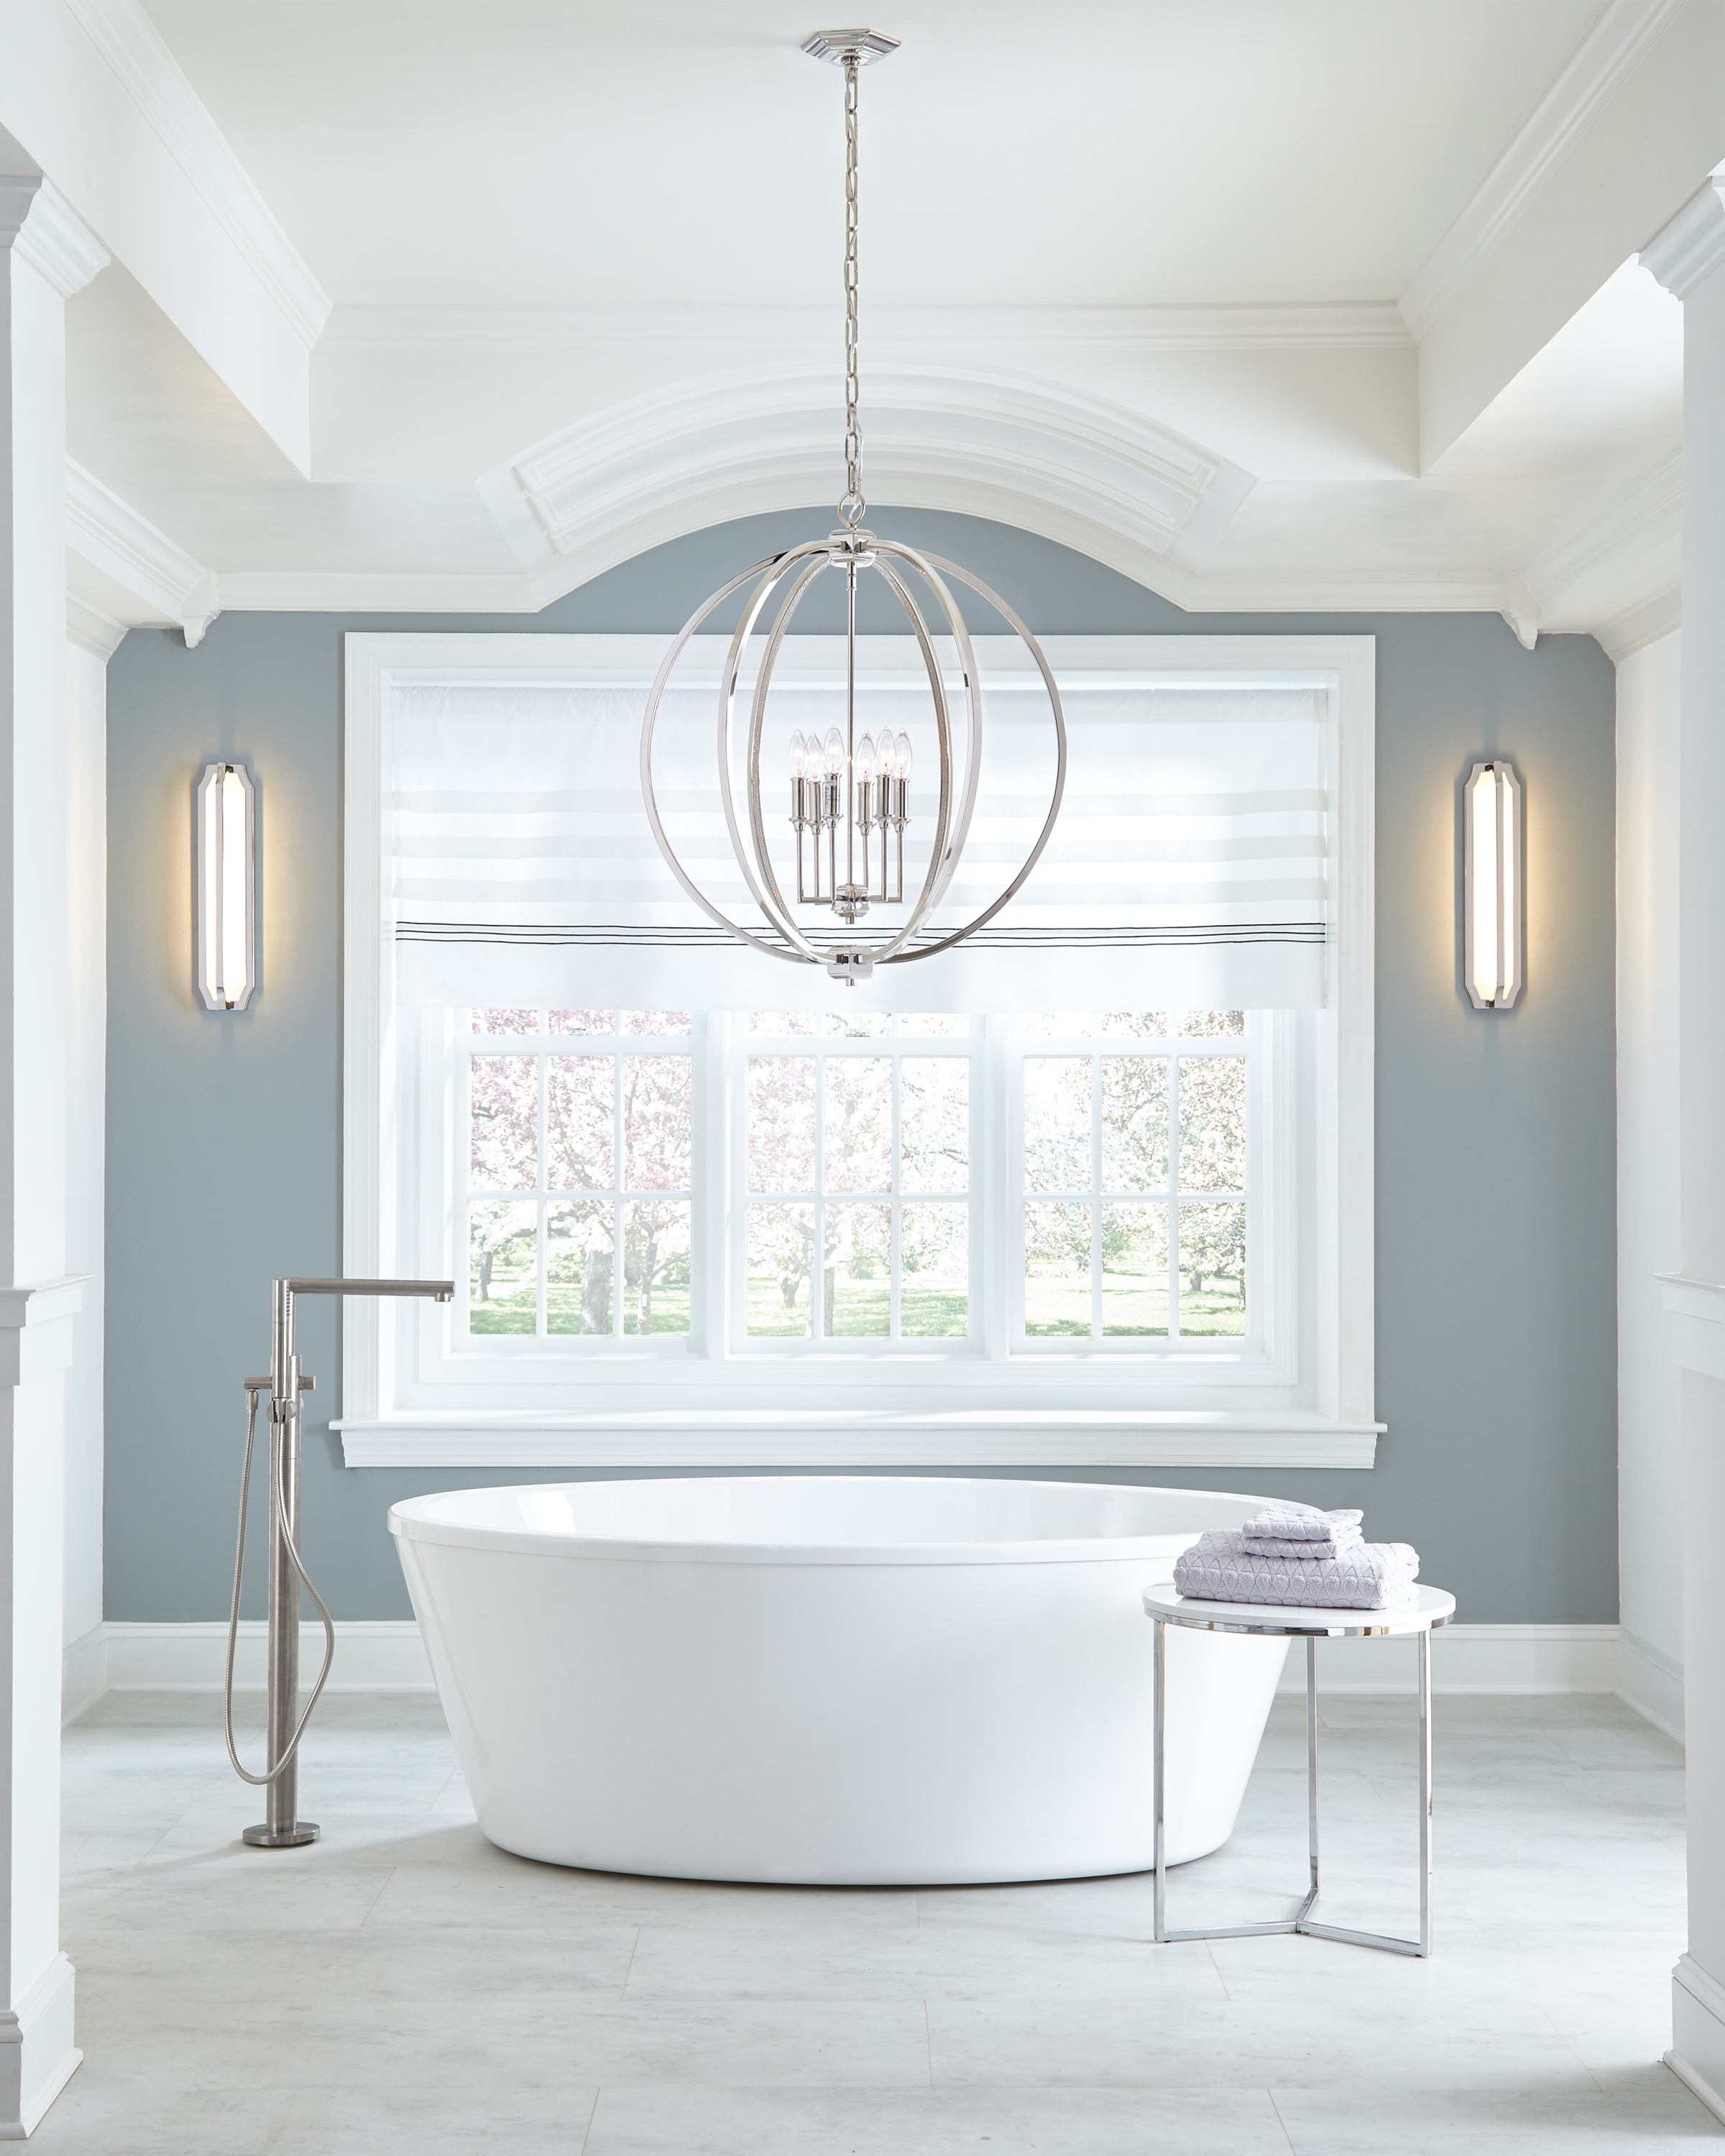 Feiss' Corinne Pendant sets the mood for this transitional master bathroom with the classy polished nickel finish and shimmering pave crystal.